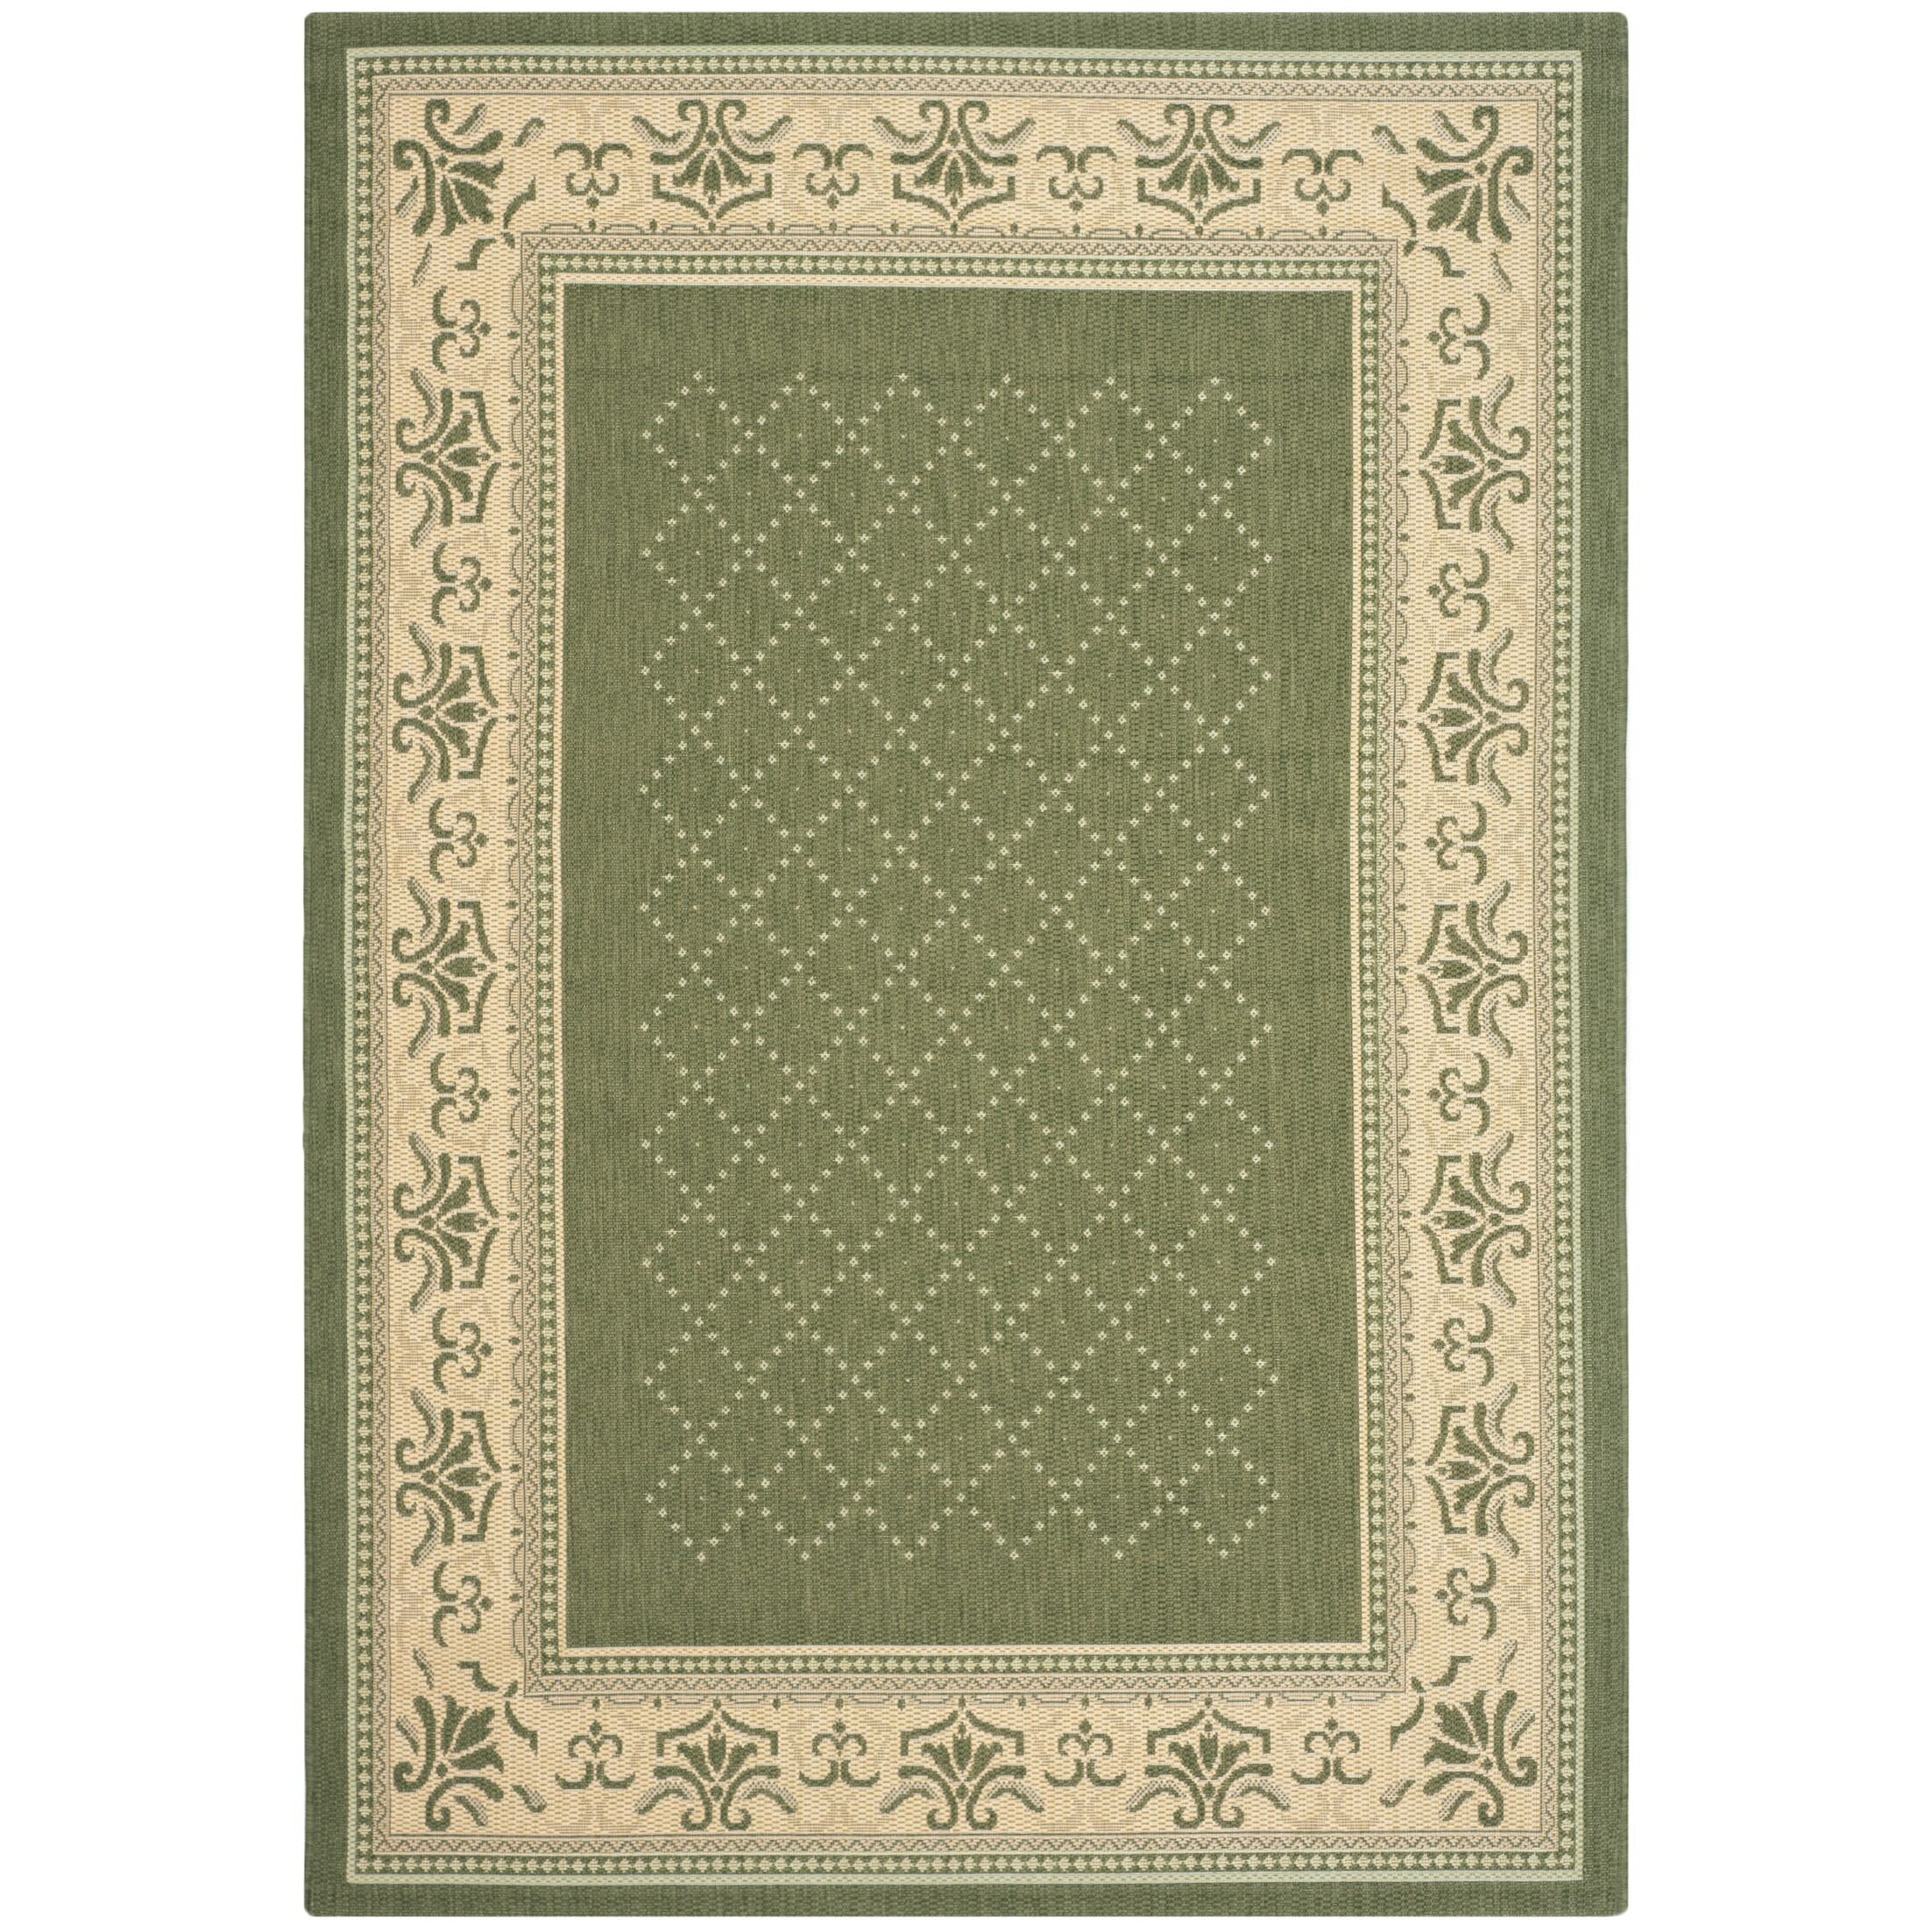 Beasley Olive/Natural Outdoor Area Rug Rug Size: Rectangle 8' x 11'